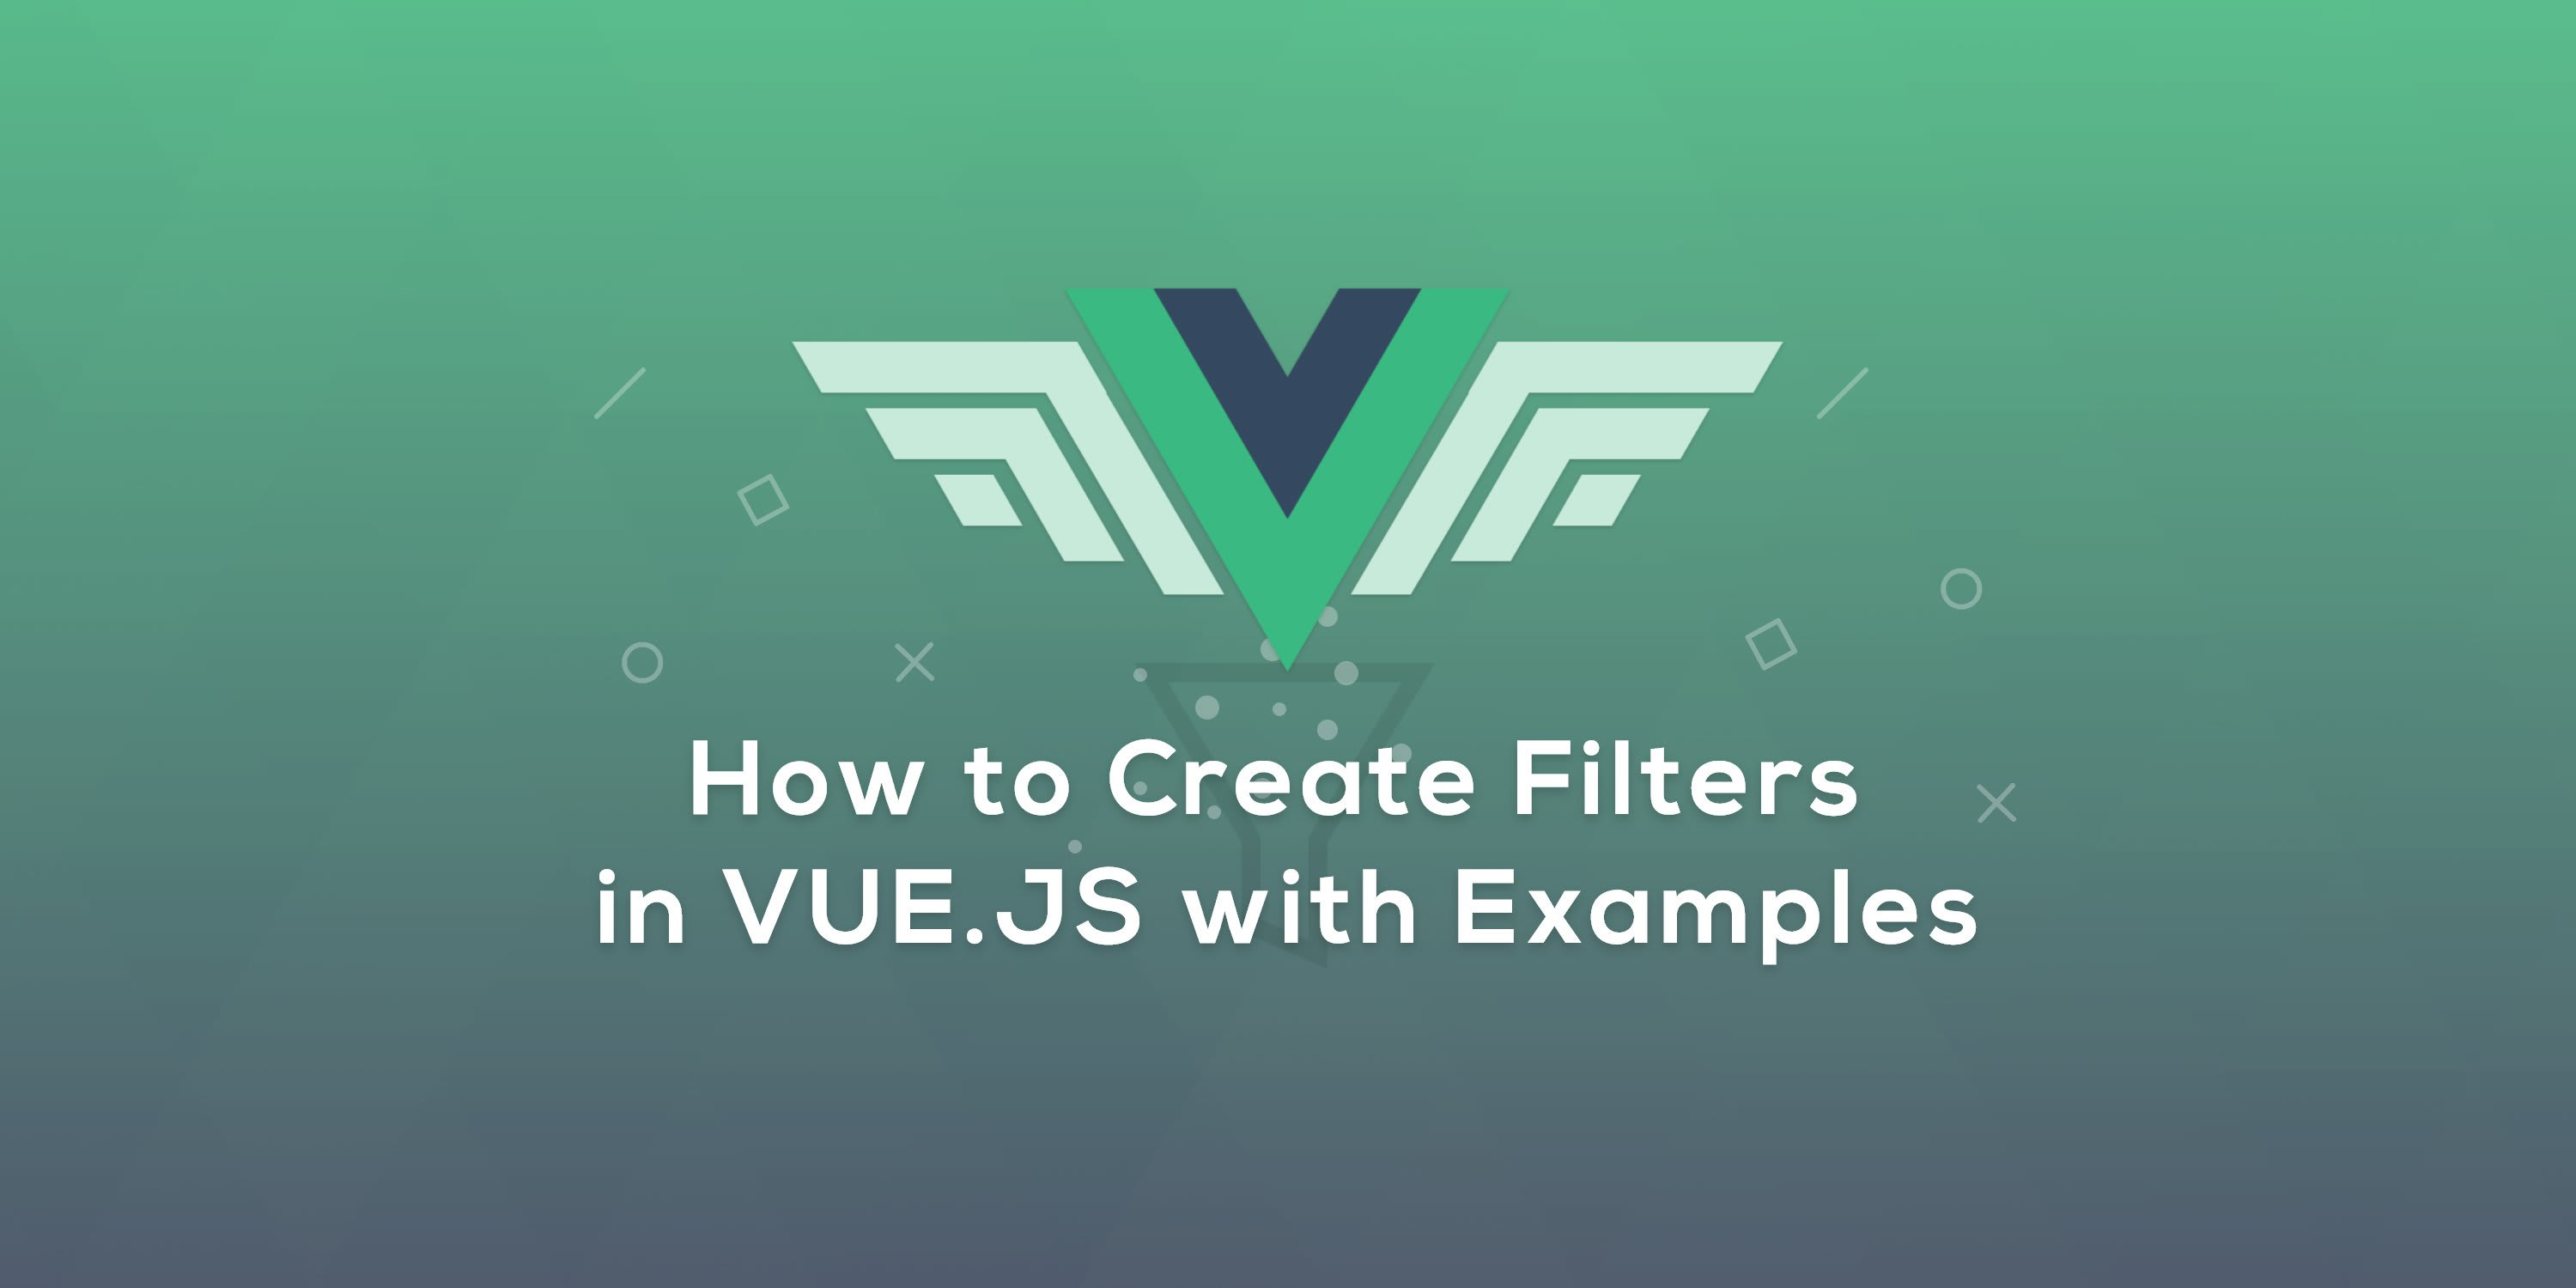 How to Create Filters in Vue js with Examples ― Scotch io